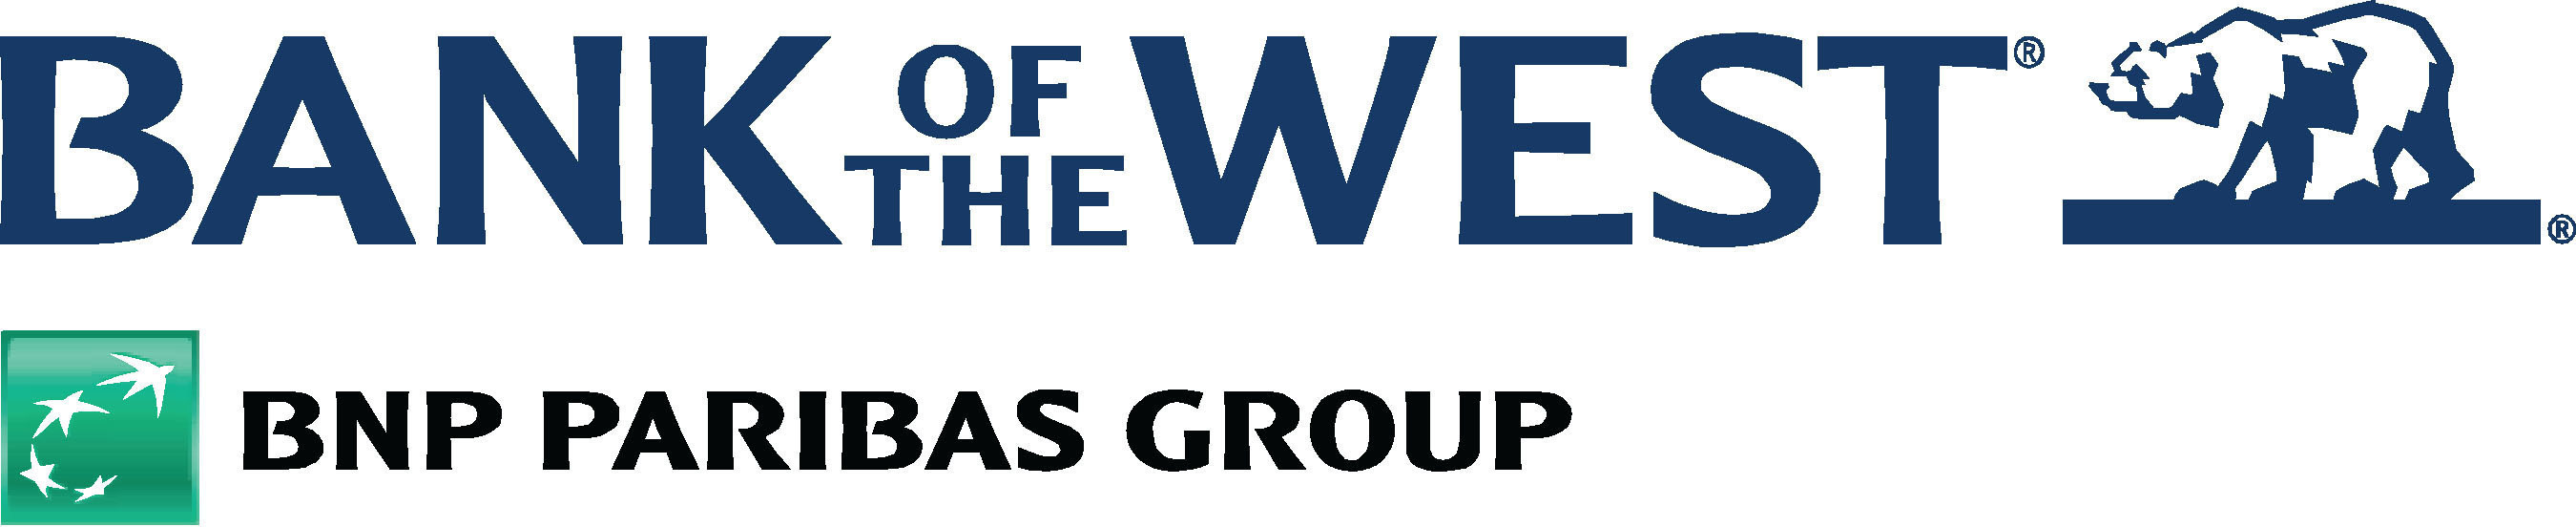 Bank of the West Logo.